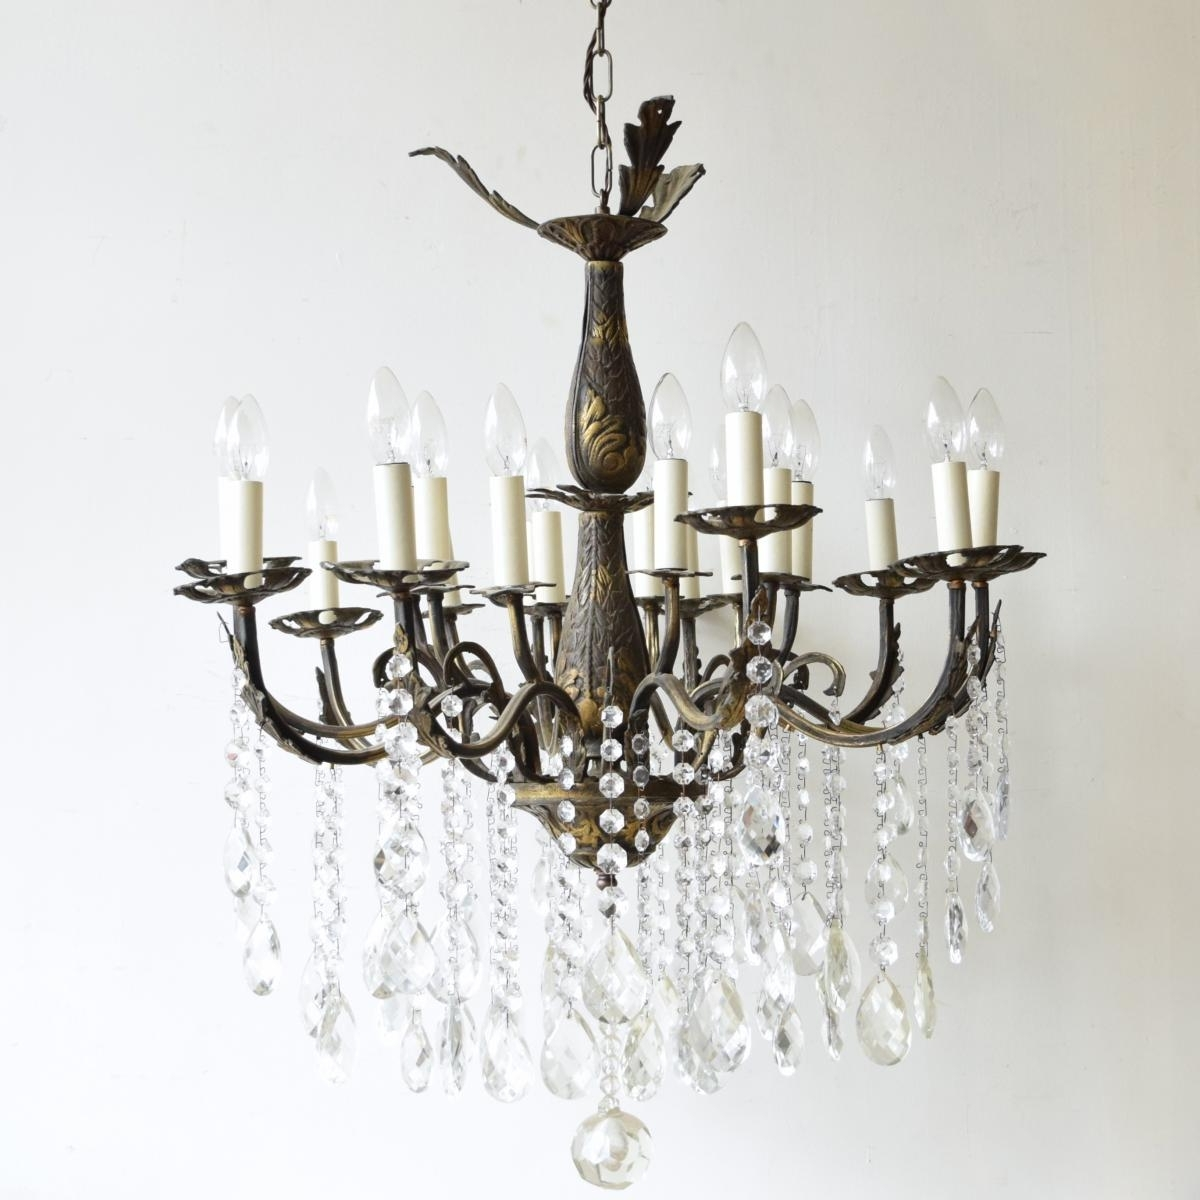 Large Vintage French 16 Light Brass Chandelier For Sale At Pamono Regarding Well Known Vintage French Chandeliers (View 11 of 20)